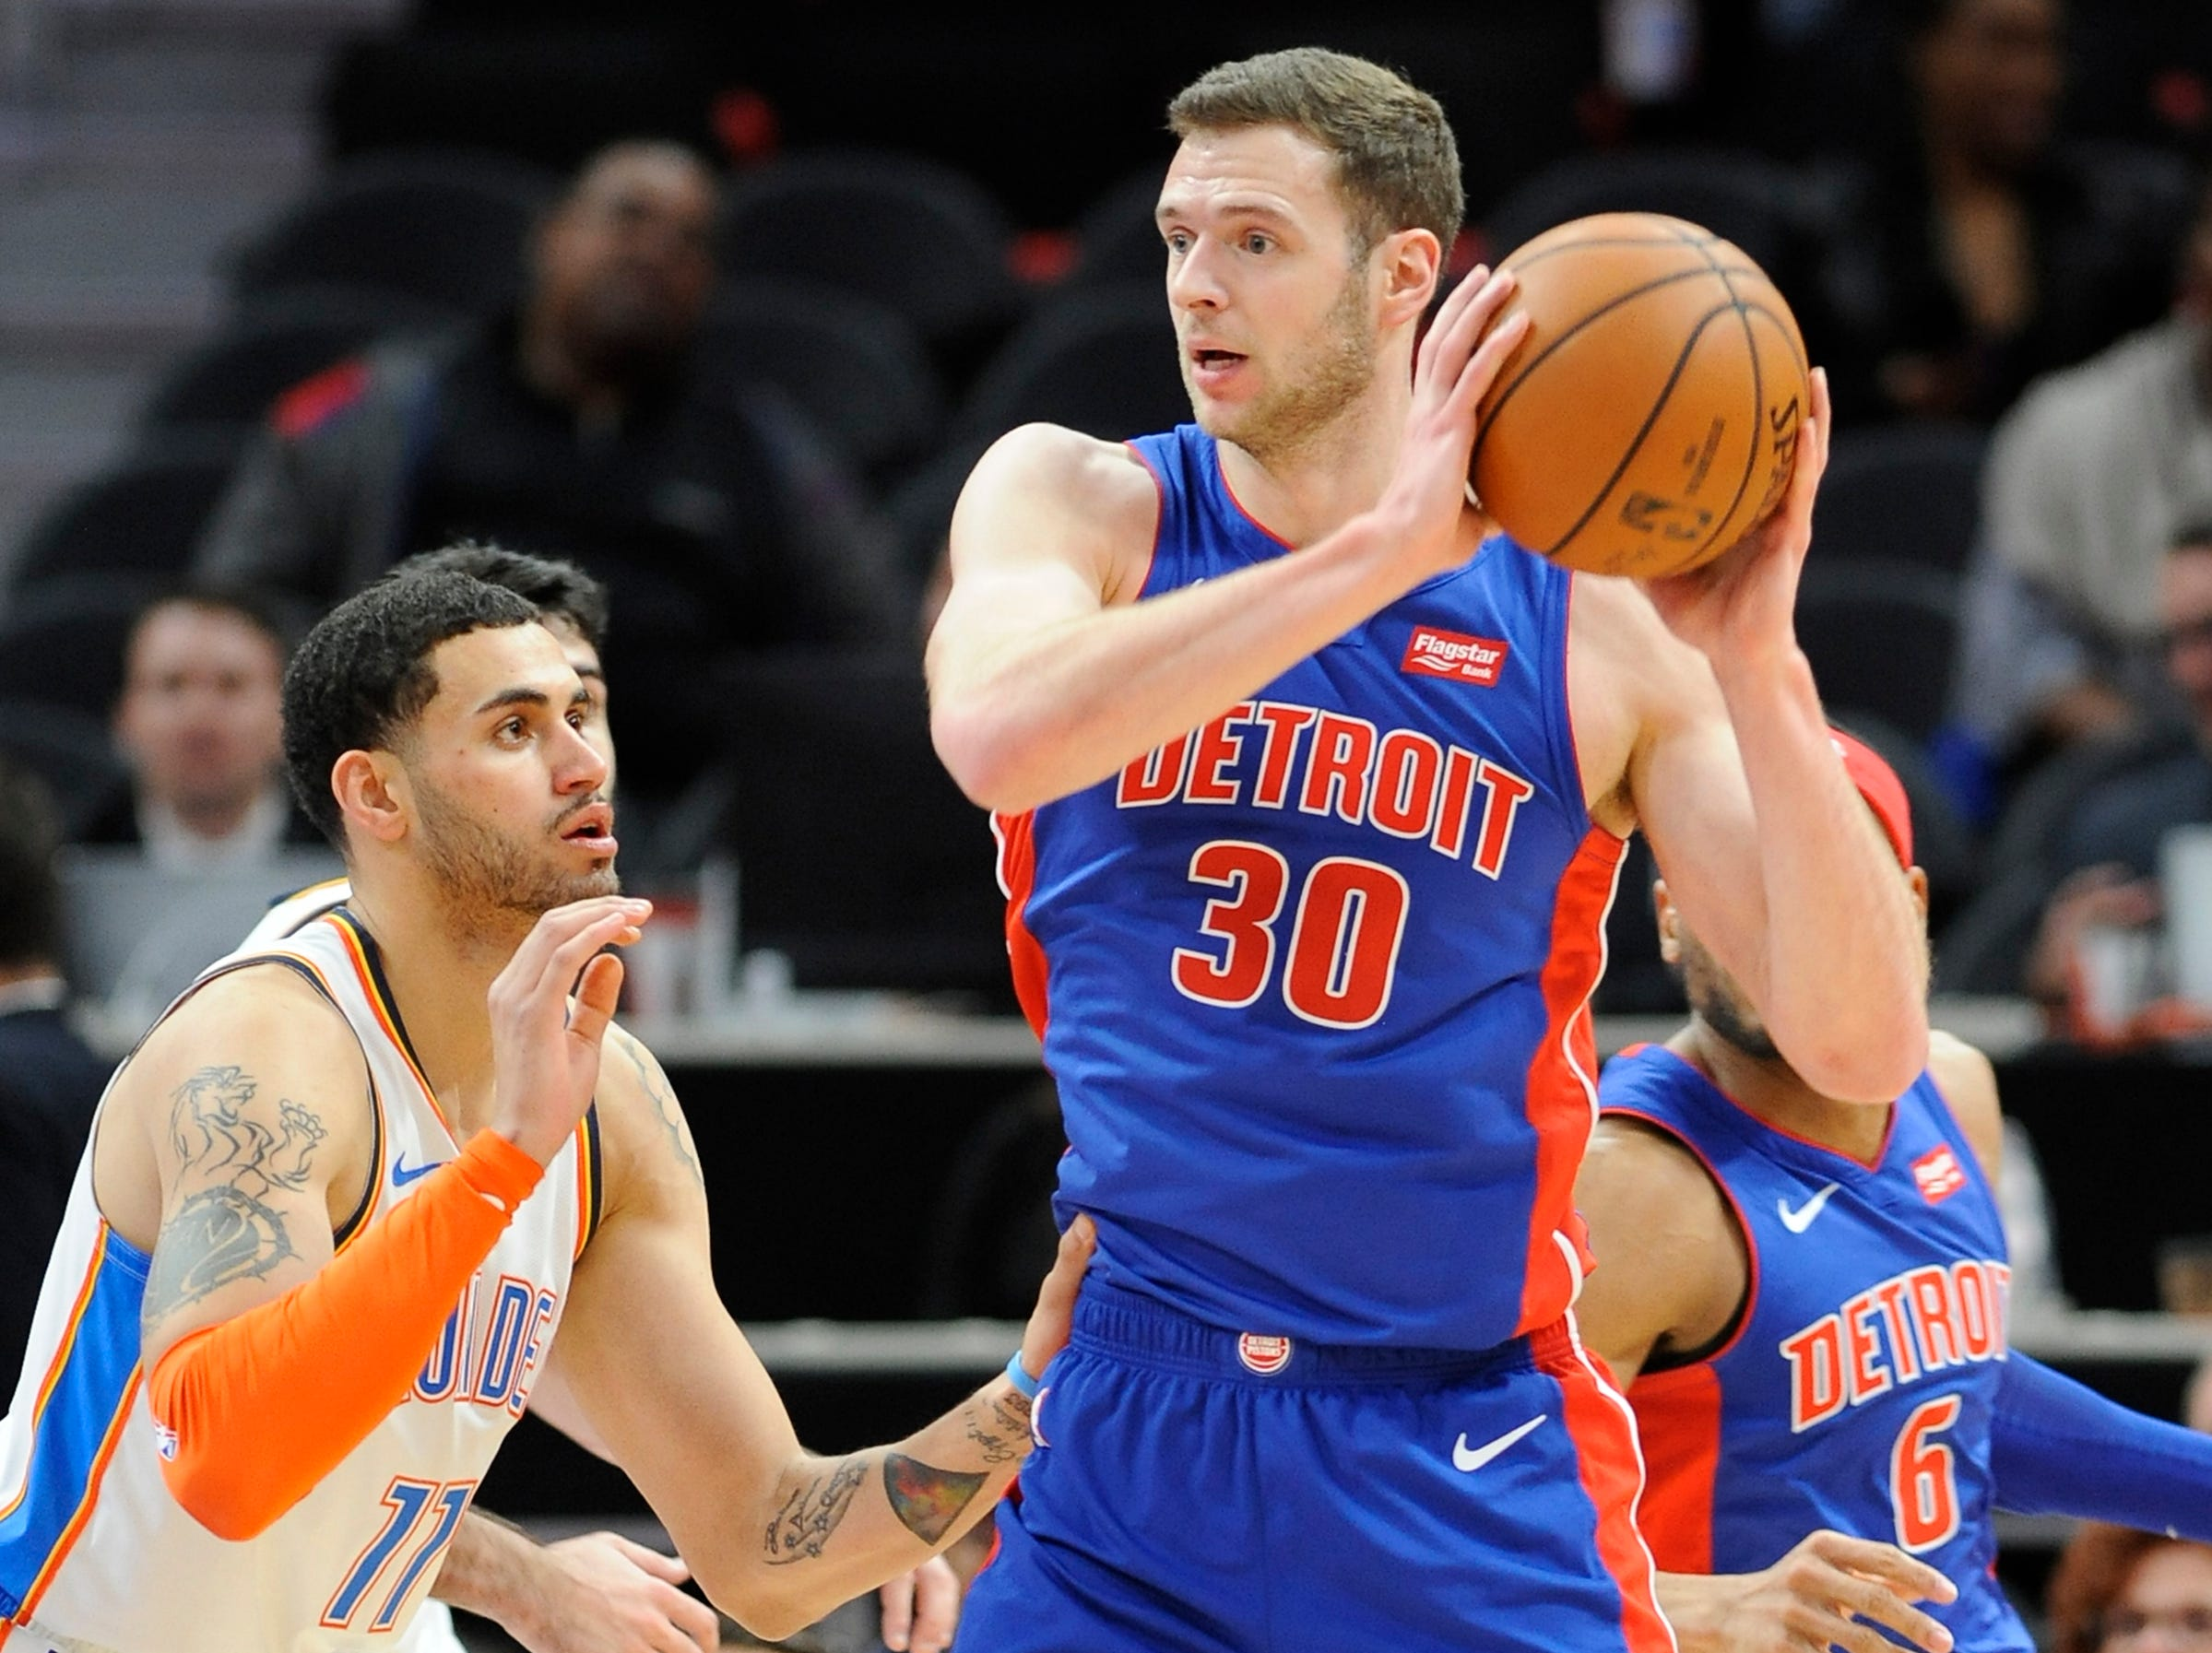 Jon Leuer -- Stats: 4.4 pts., 2.7 rebs. in 27 games. Age: 29. He's back healthy, but hasn't been able to find a lot of playing time behind Griffin and Johnson. Leuer hasn't been an effective 3-point shooter, which was his best trait, but he's found other ways to scrap and add value. Grade: C